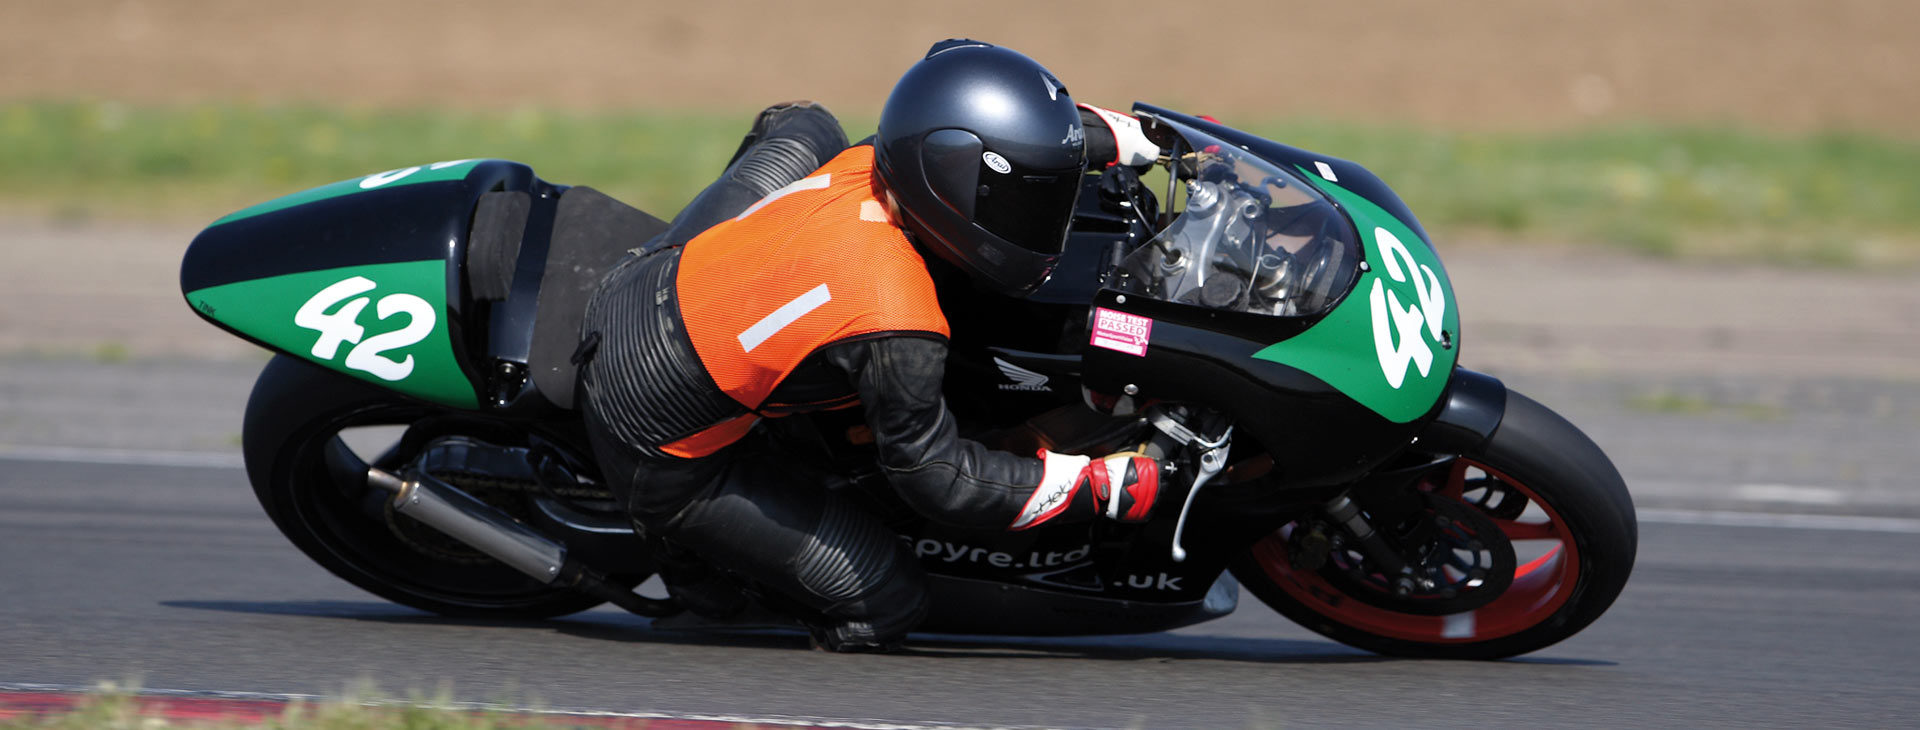 Sian's novice season on the RS250 Honda